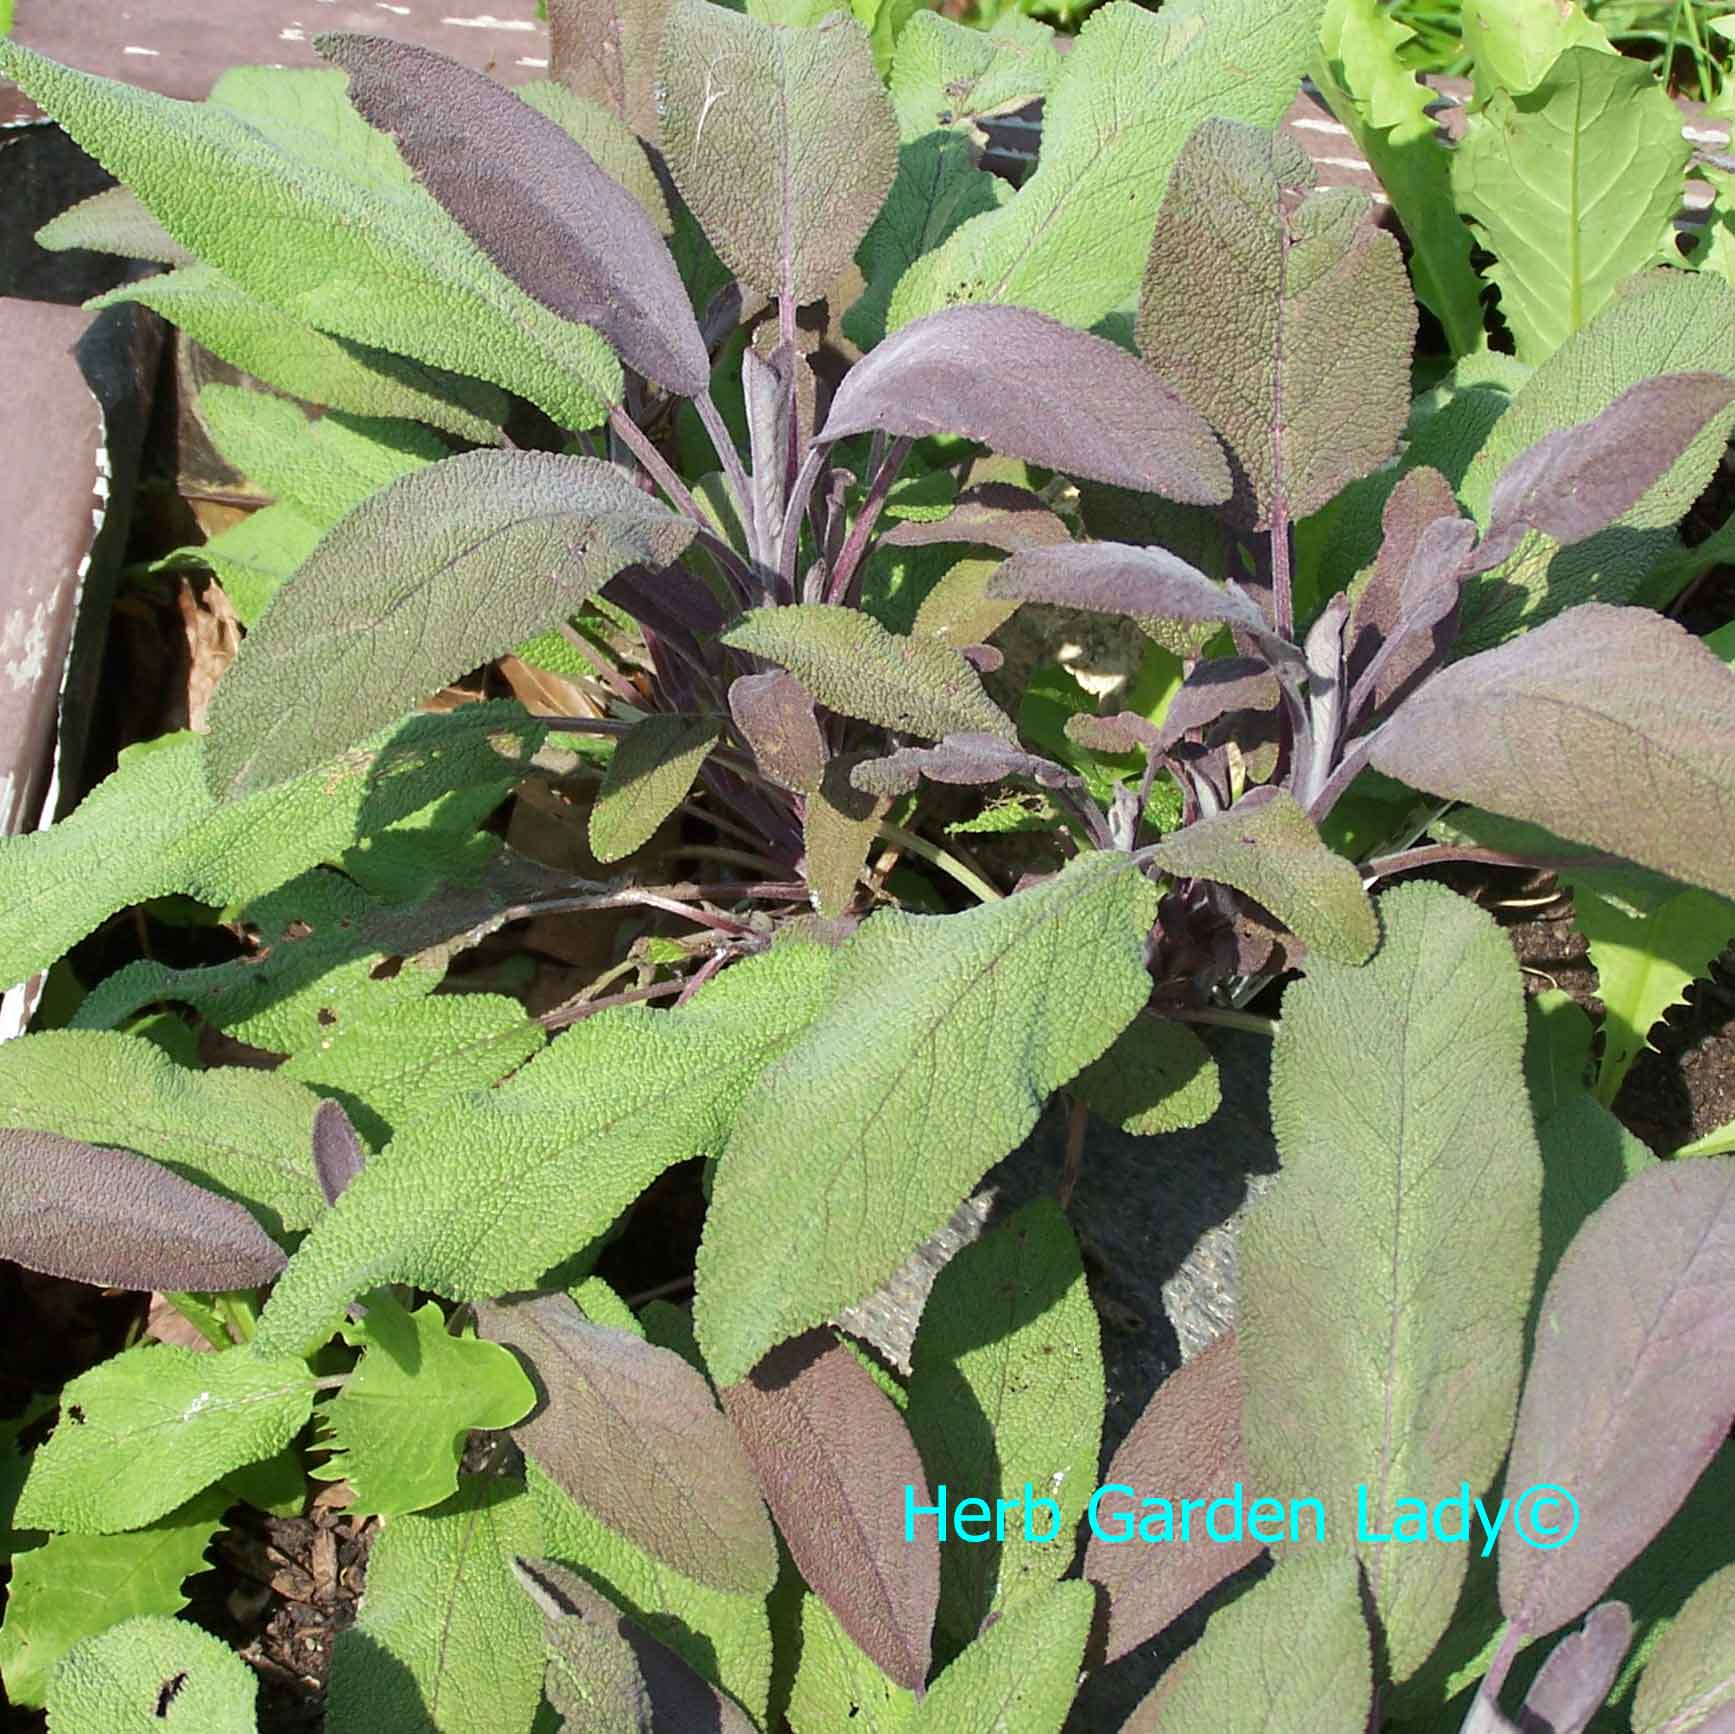 Scenic Purple Sage Hot Flashes Sage Herb Is A Organic Pest Control Sage Pest Control Greensboro Nc Sage Pest Control Cost houzz-03 Sage Pest Control